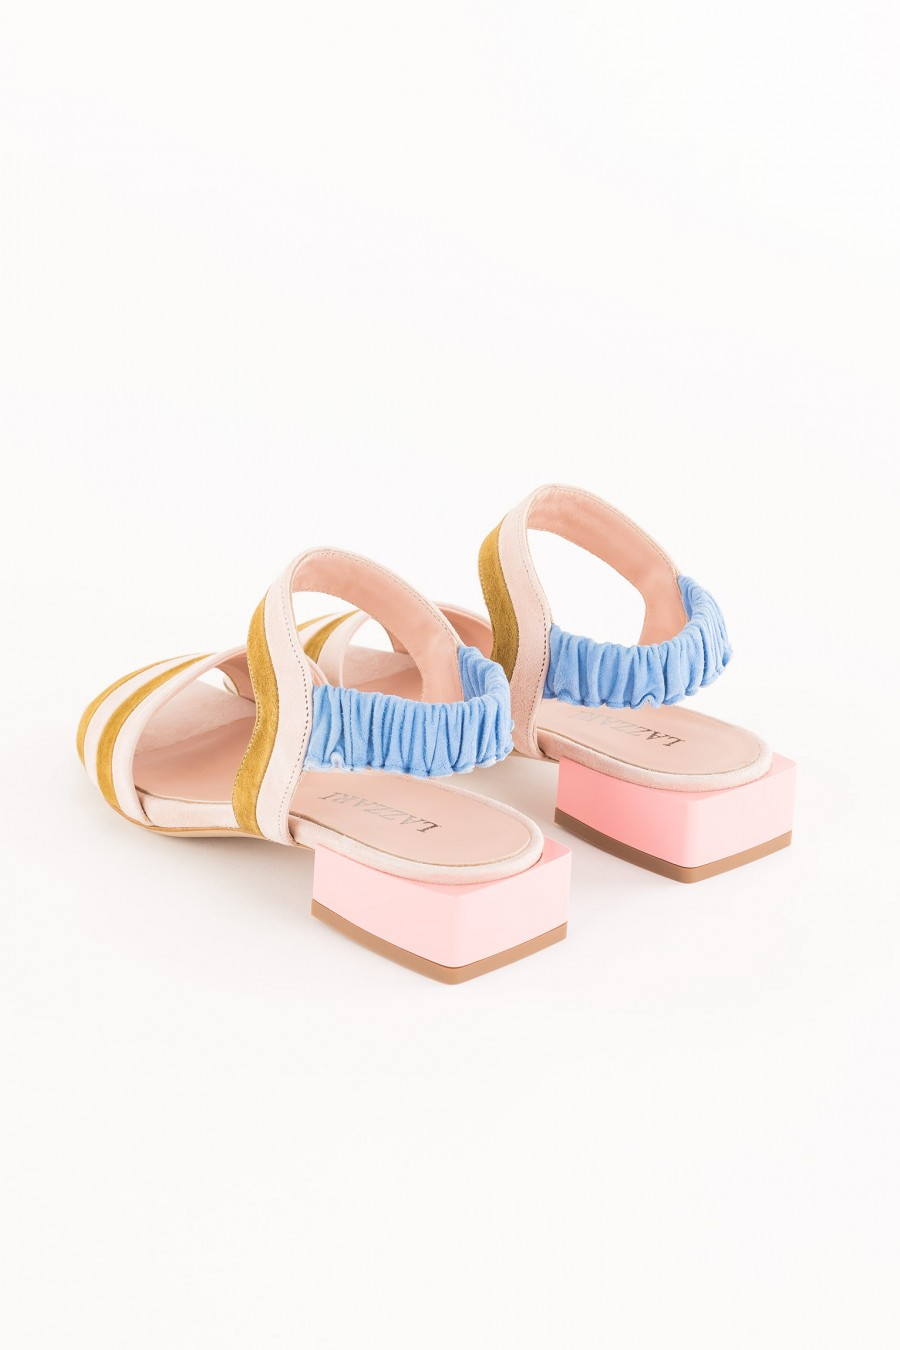 pink sandal with low heel